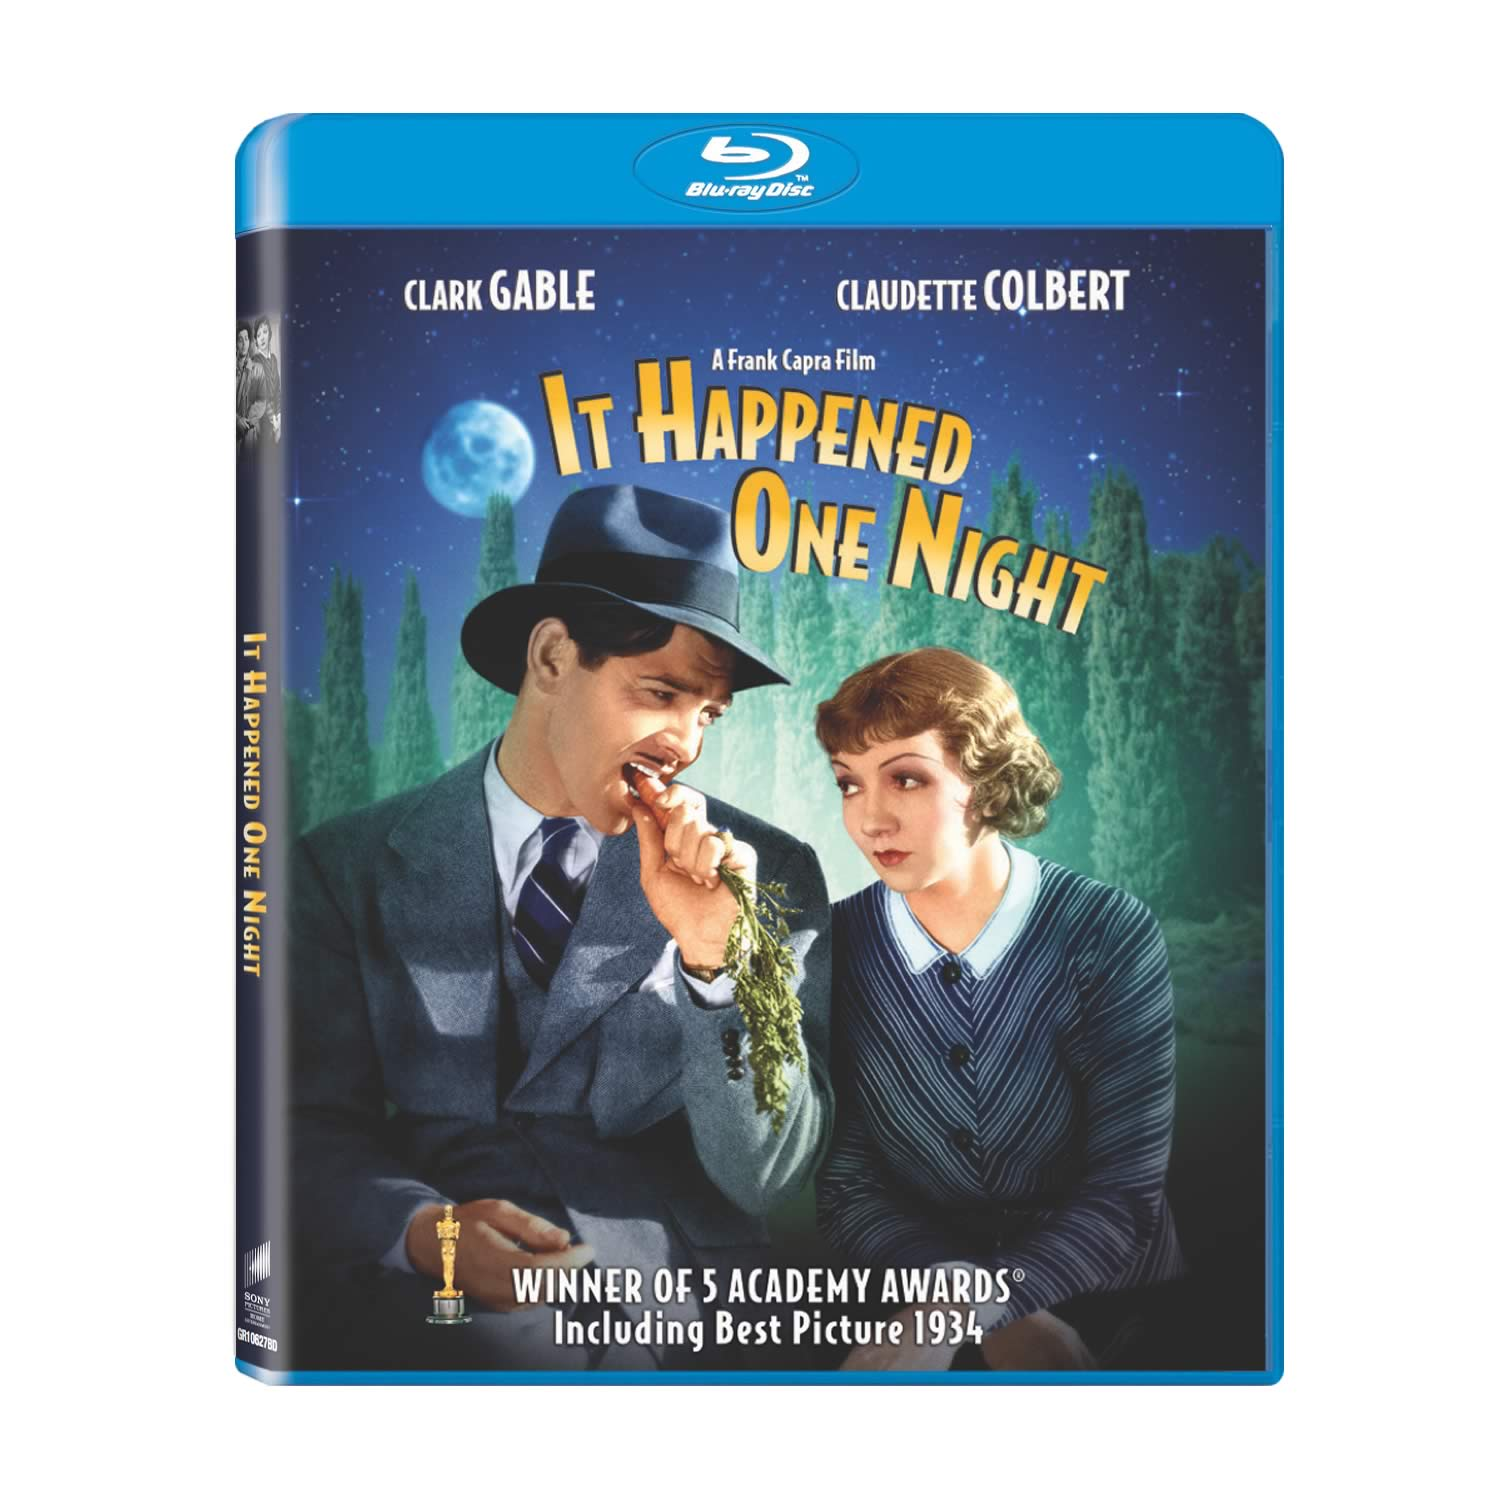 IT HAPPENED ONE NIGHT - ΣΥΝΕΒΗ ΜΙΑ ΝΥΧΤΑ [4K MASTERED] (BLU-RAY)